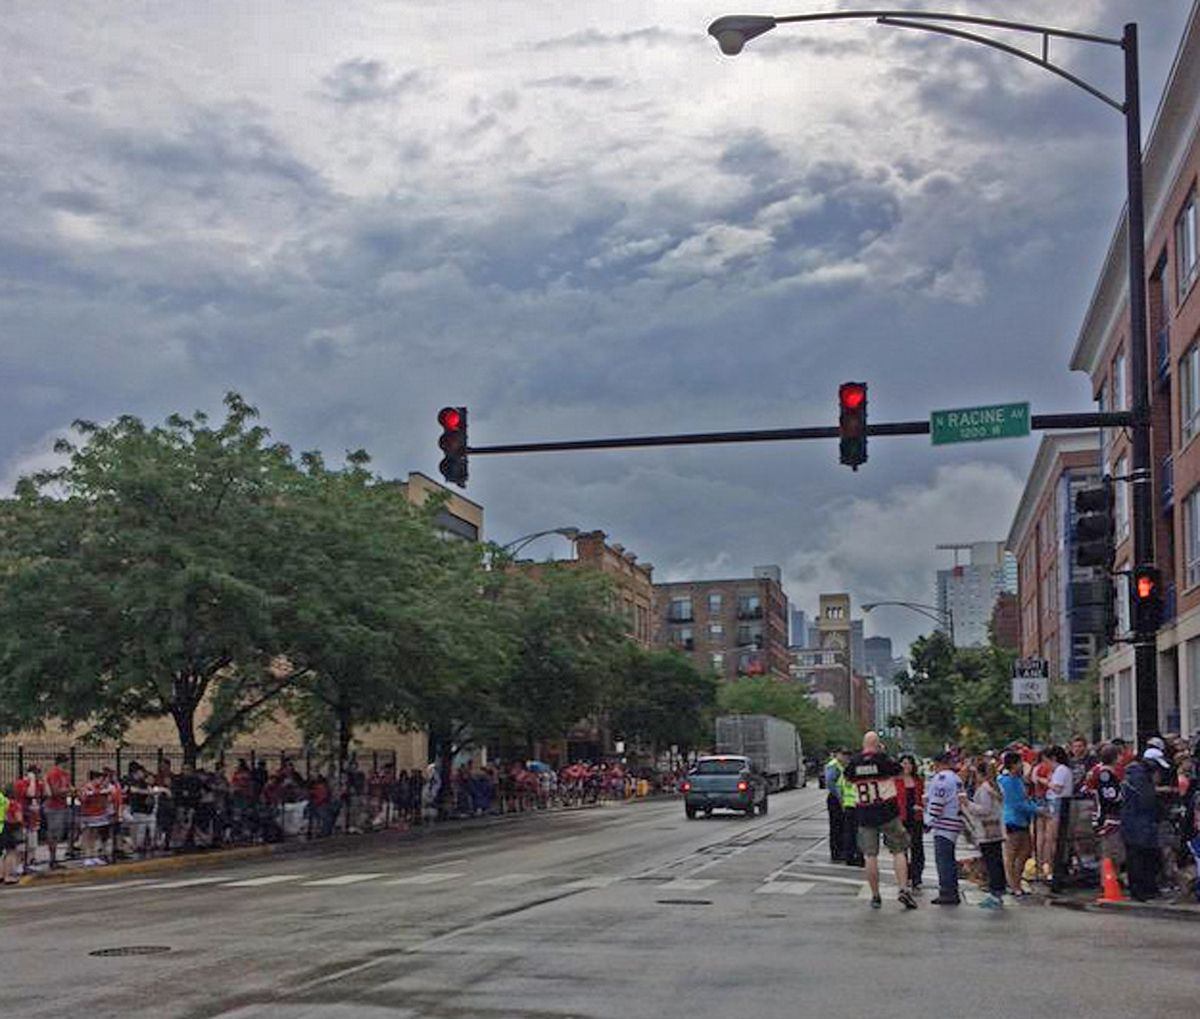 Rain chases the crowd away, at least temporarily, at Washington and Racine, where the parade starts in about an hour. | Diana Novak Jones/Sun-Times